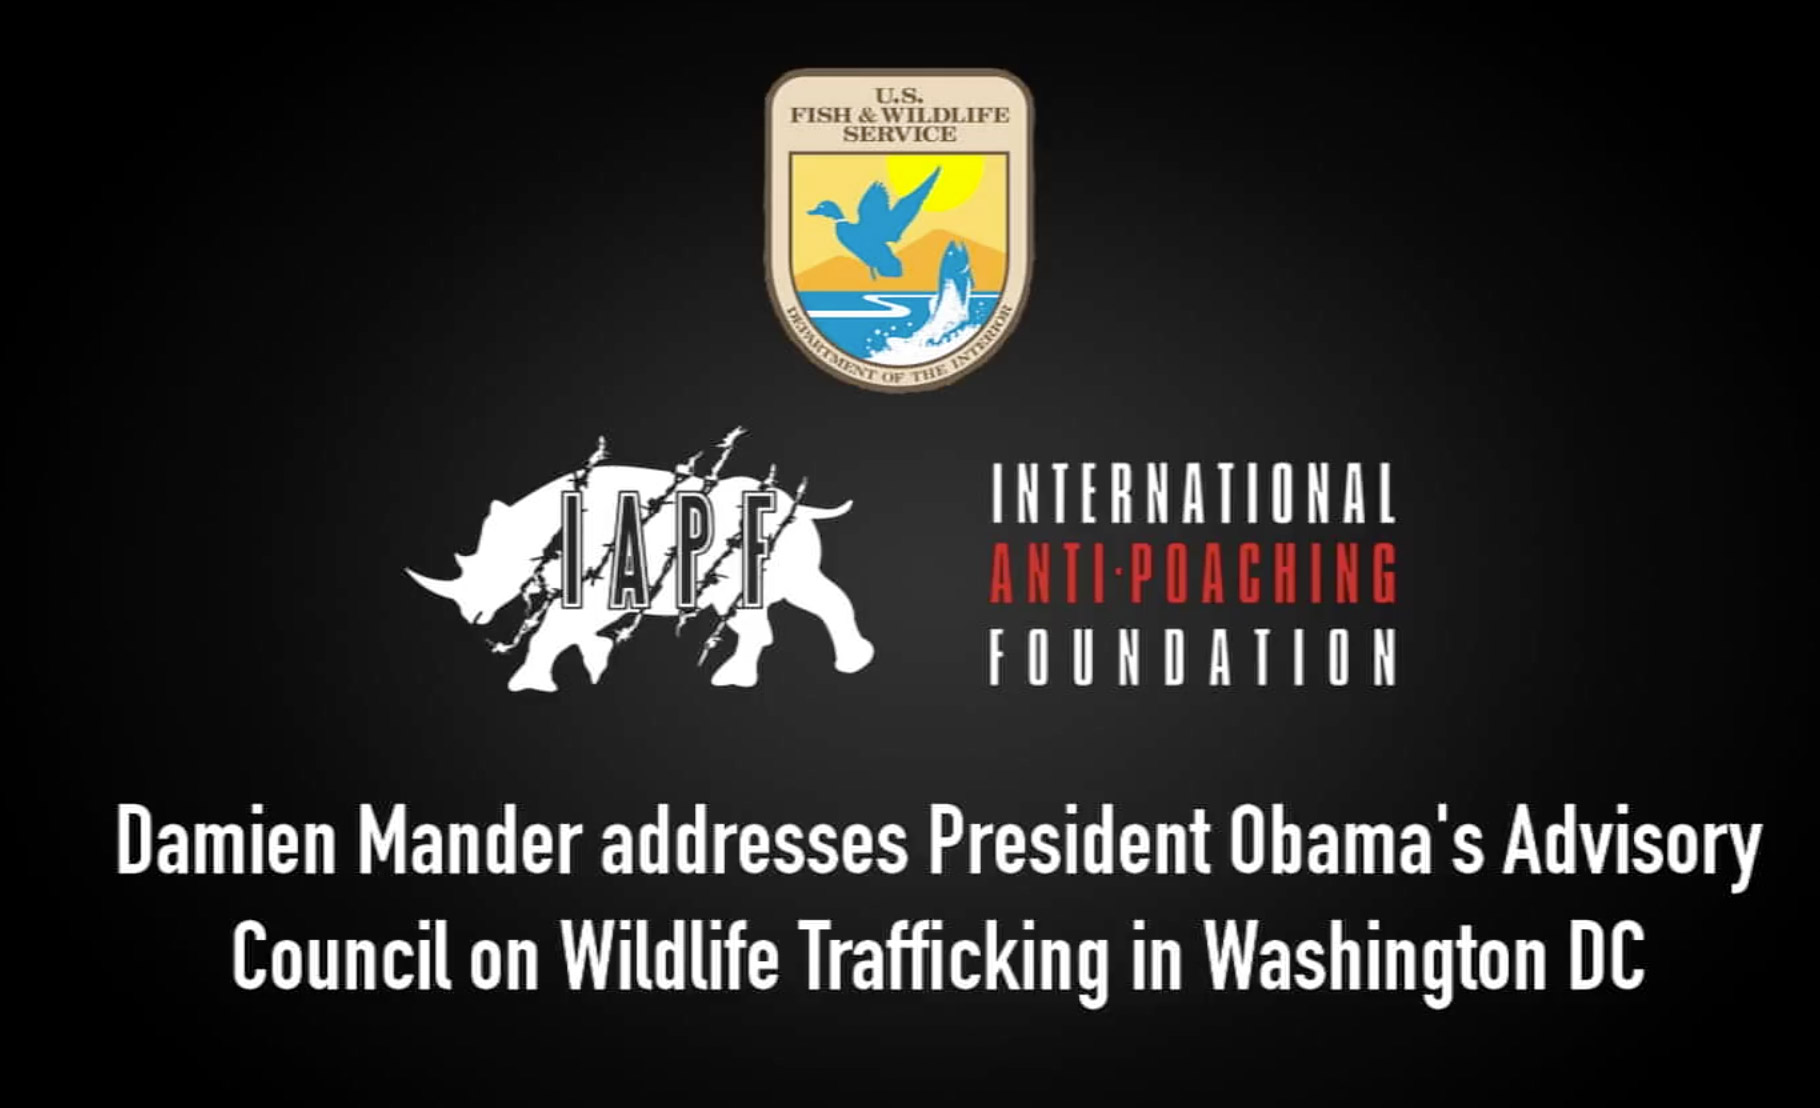 Damien Mander addresses President Obama's Advisory Council on Wildlife Trafficking in Washington DC